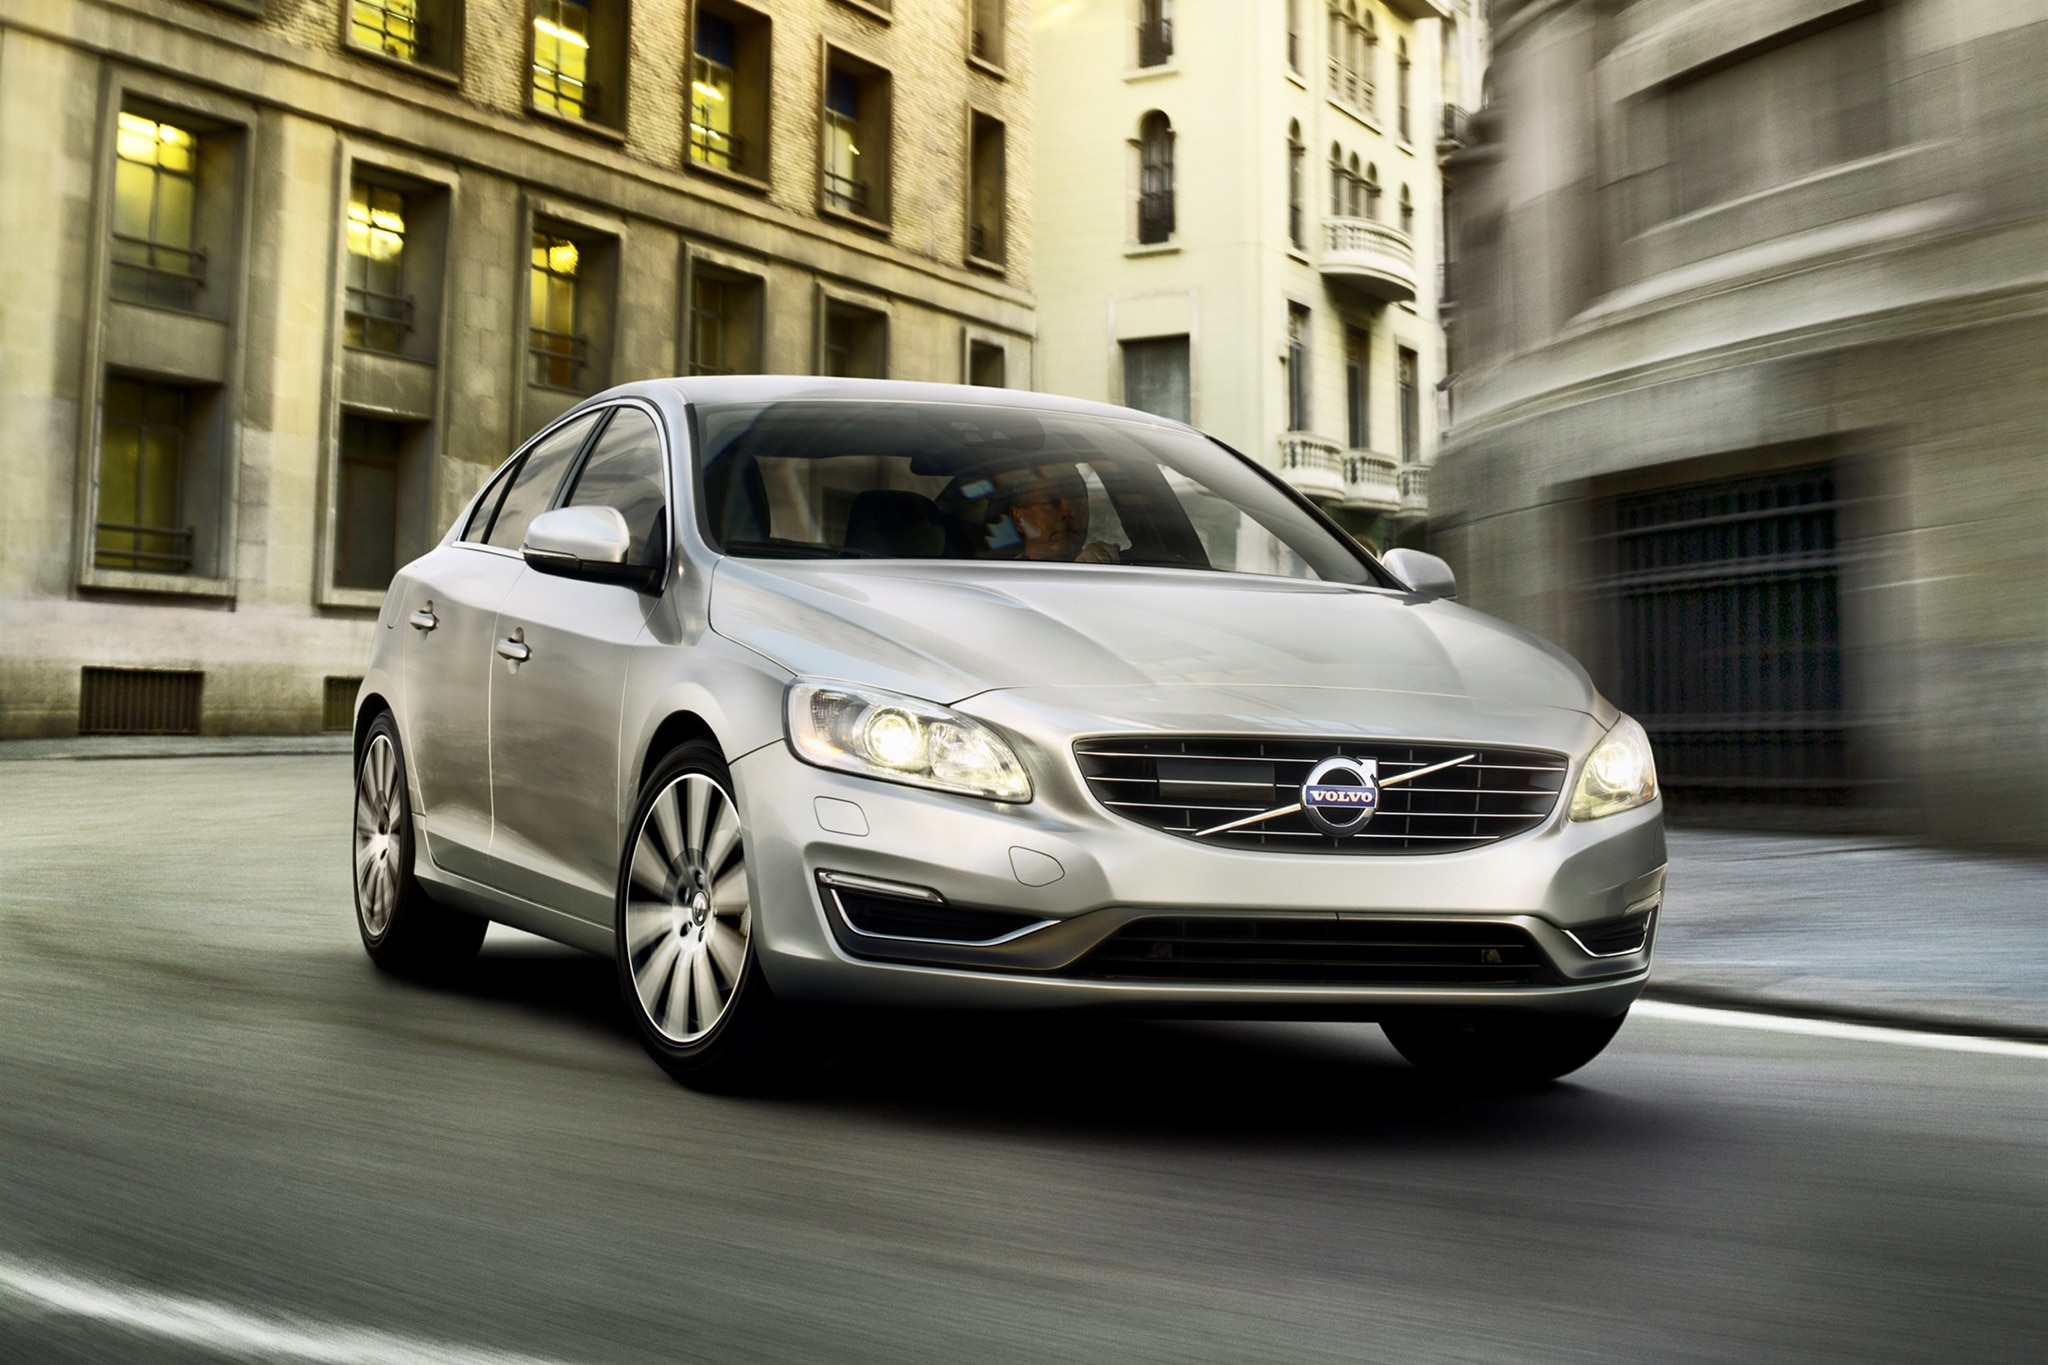 2014 Volvo S60 Three Quarters View 101